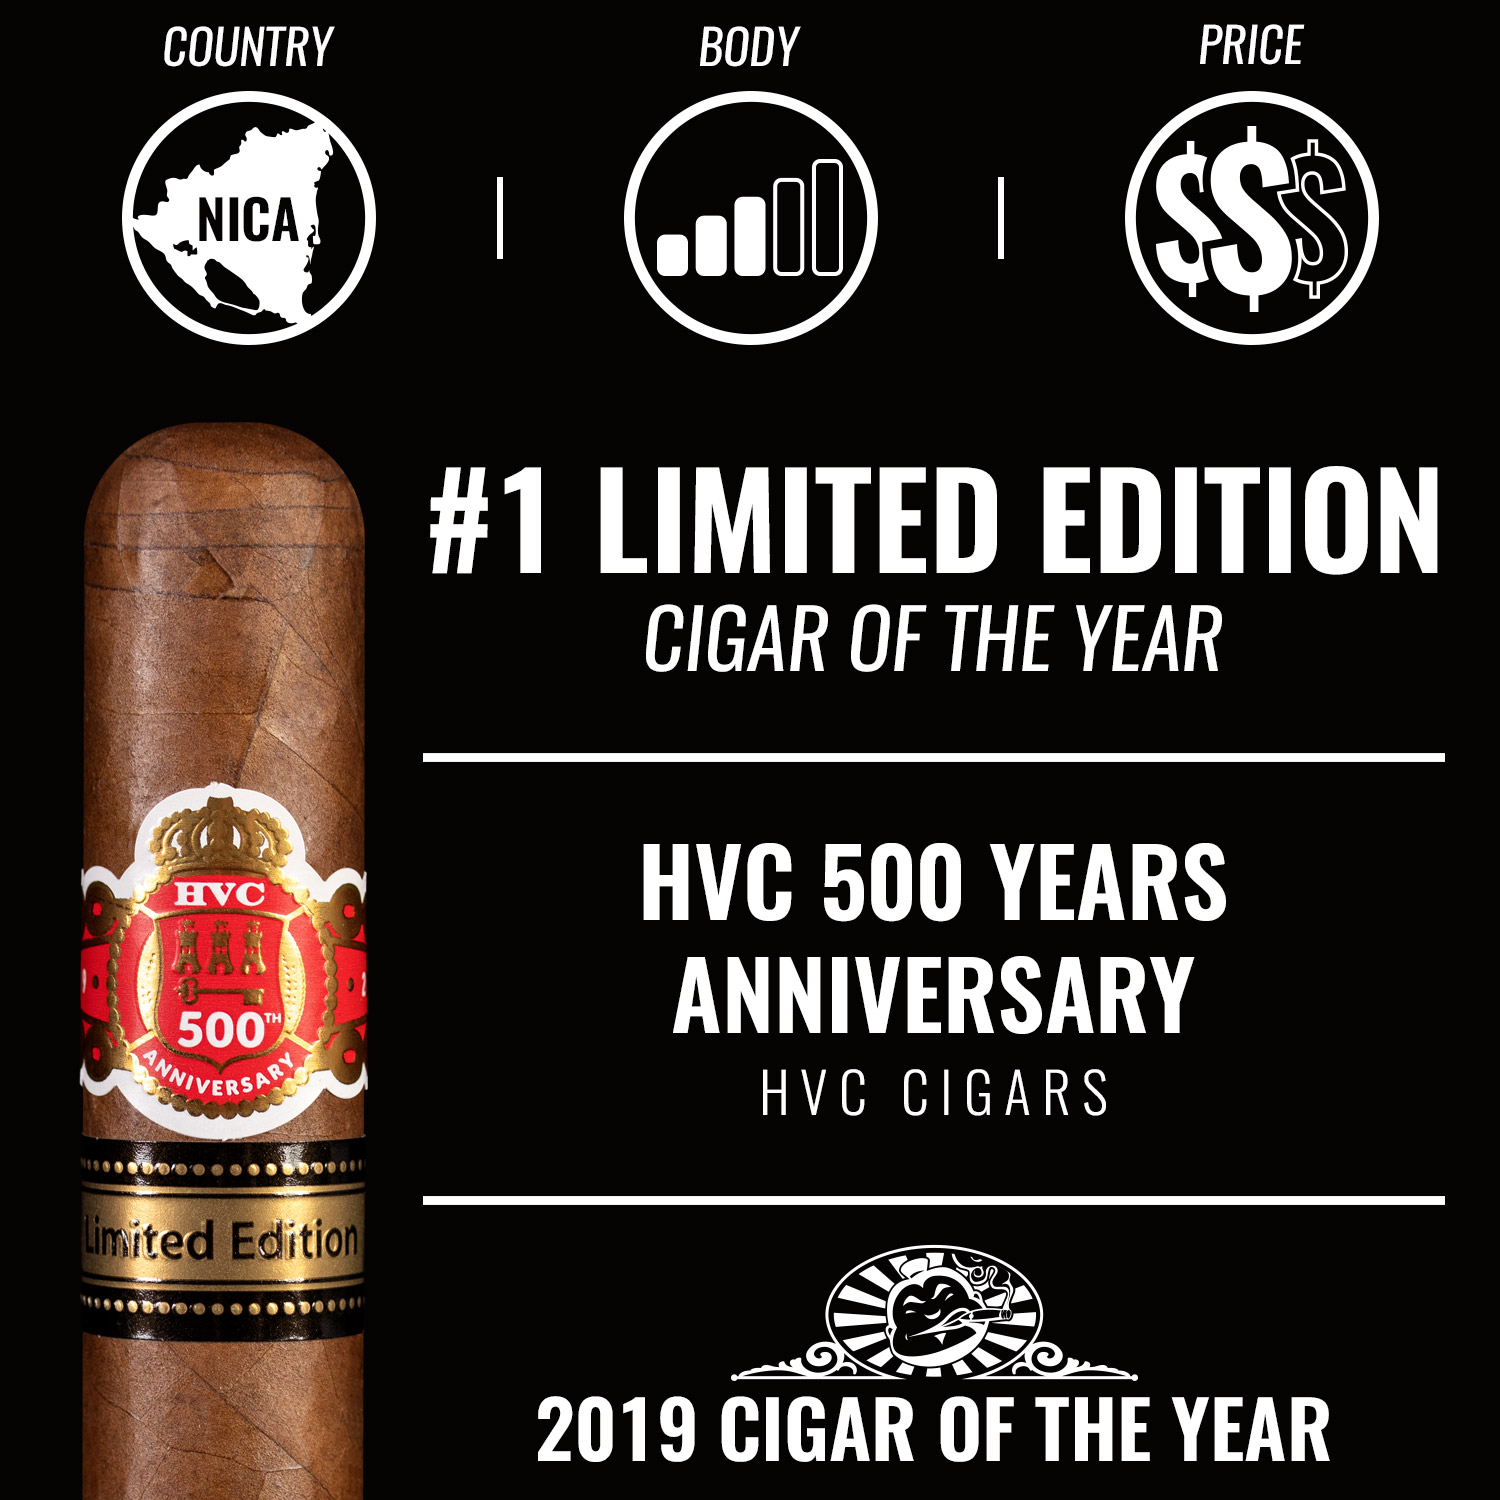 HVC 500 Years Anniversary No. 1 Limited Edition Cigar of the Year 2019